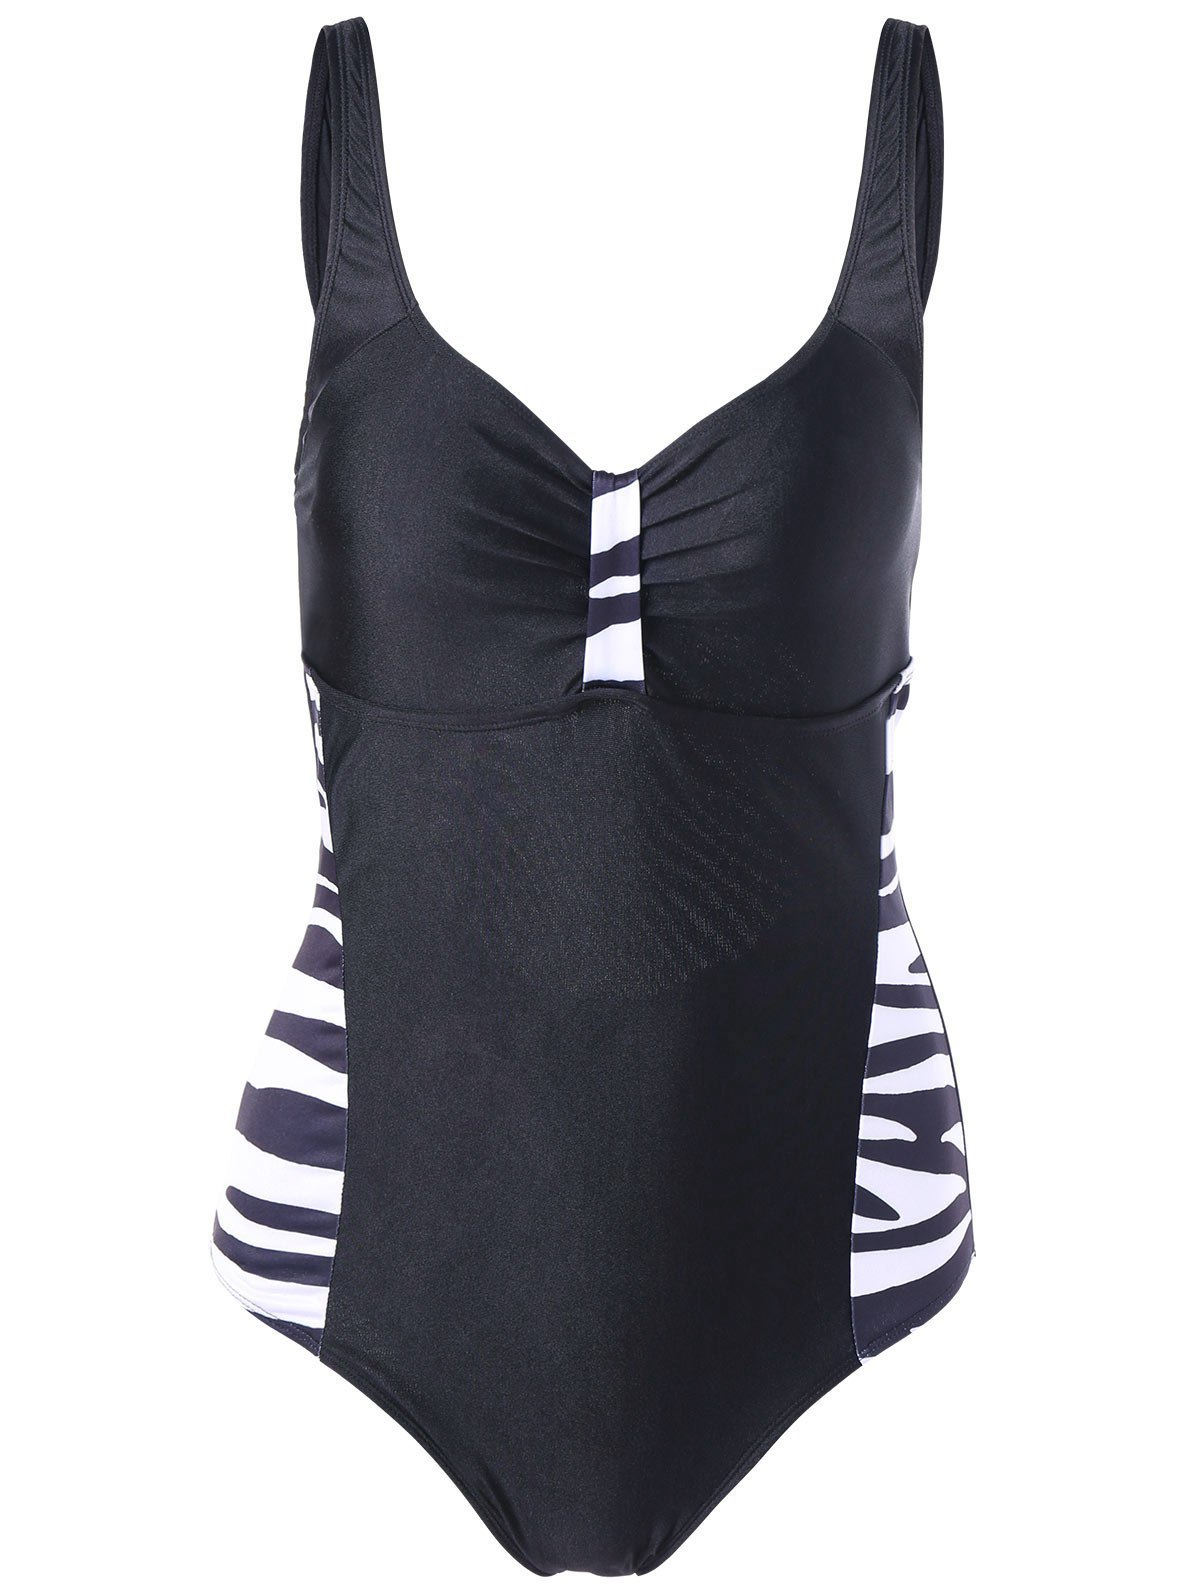 Cut Out Padded Bra One-Piece Swimsuit - BLACK XL